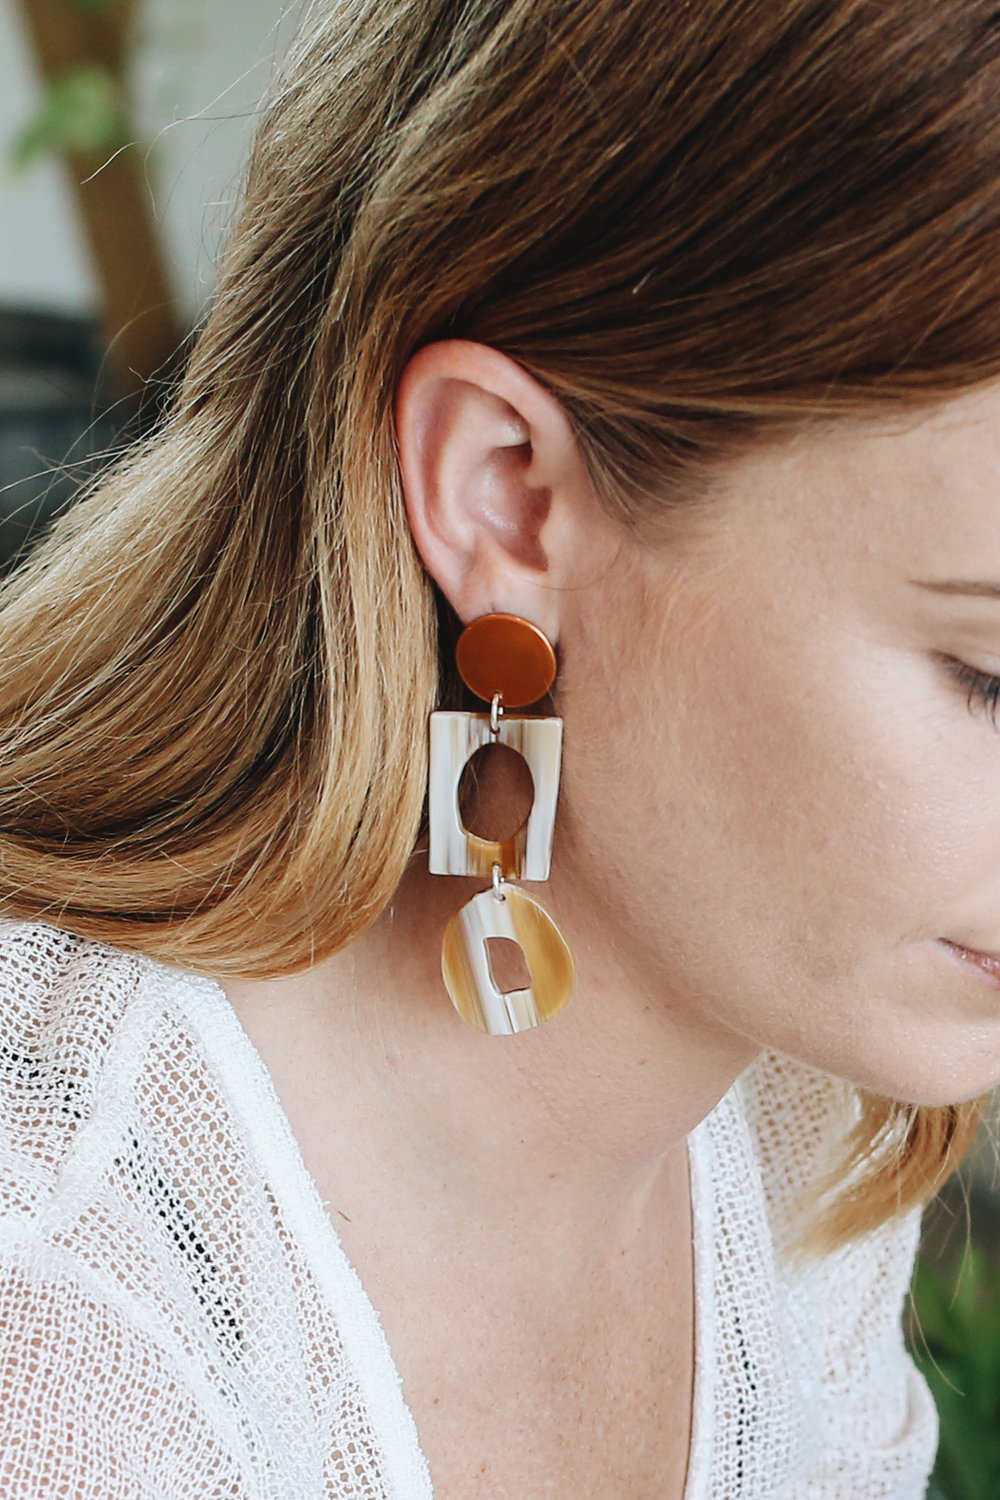 Mim Wears the Collector Earrings in Tangelo Chrome